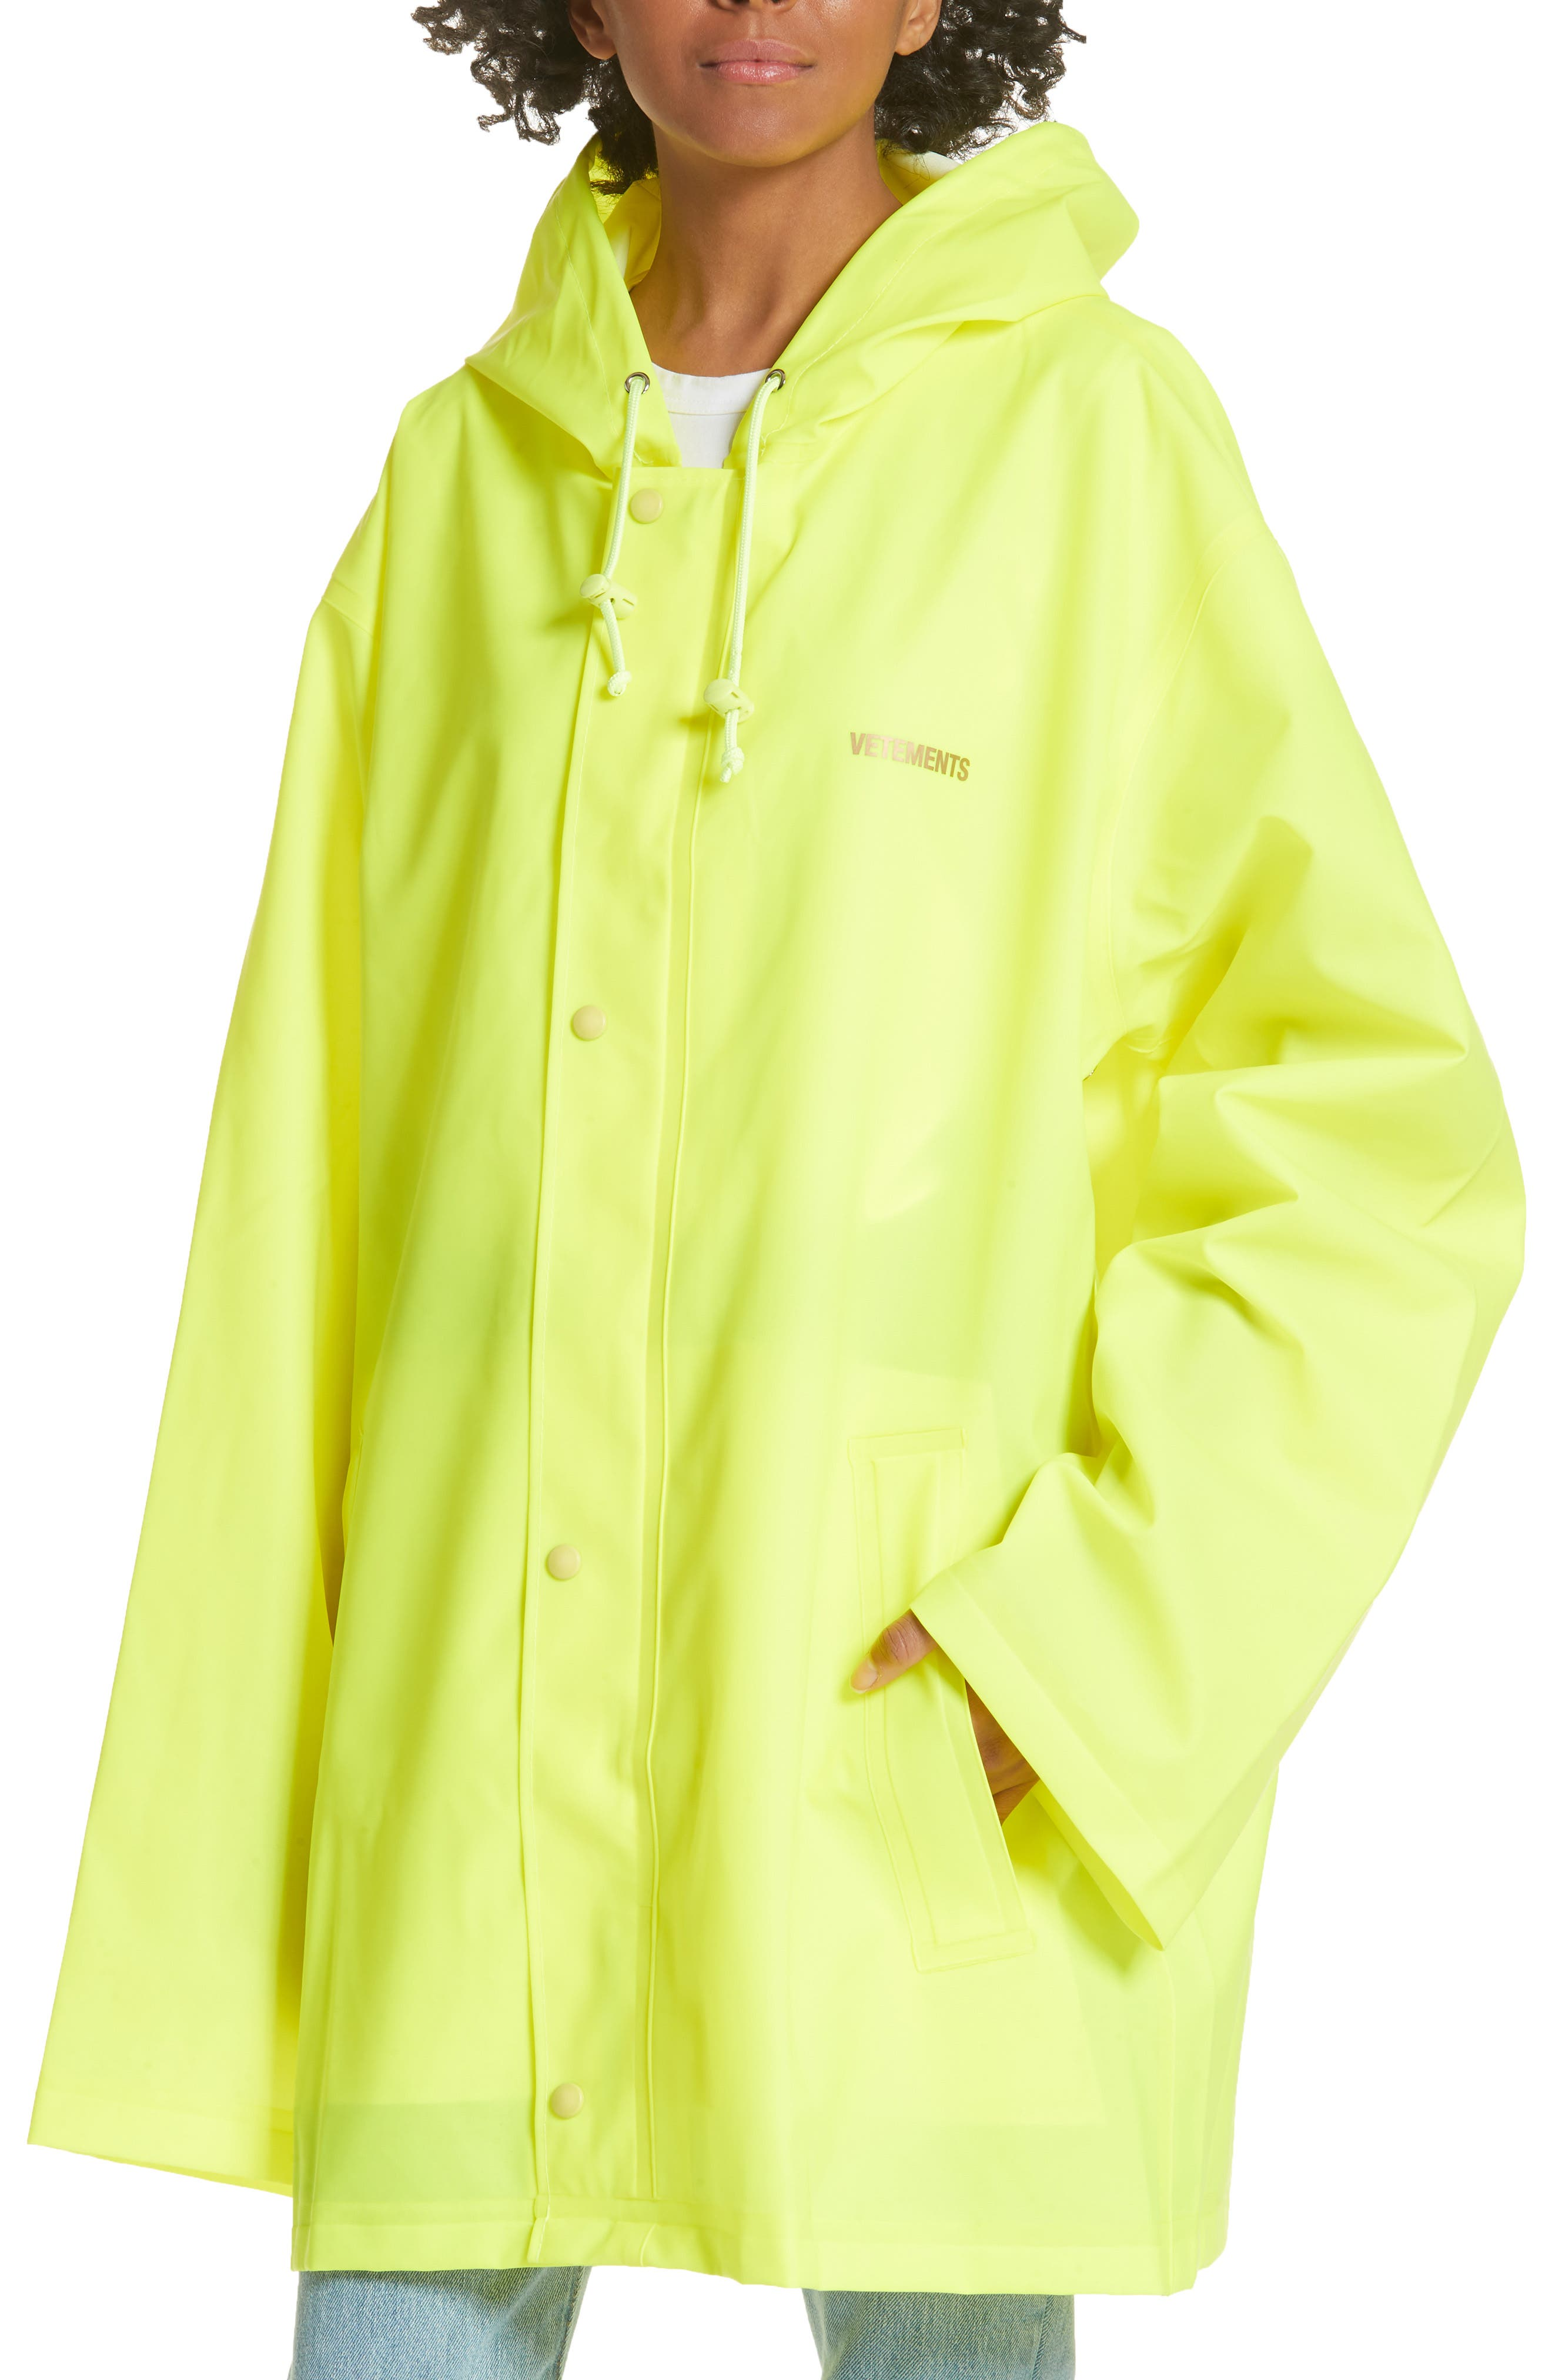 Short Logo Raincoat,                             Alternate thumbnail 4, color,                             700